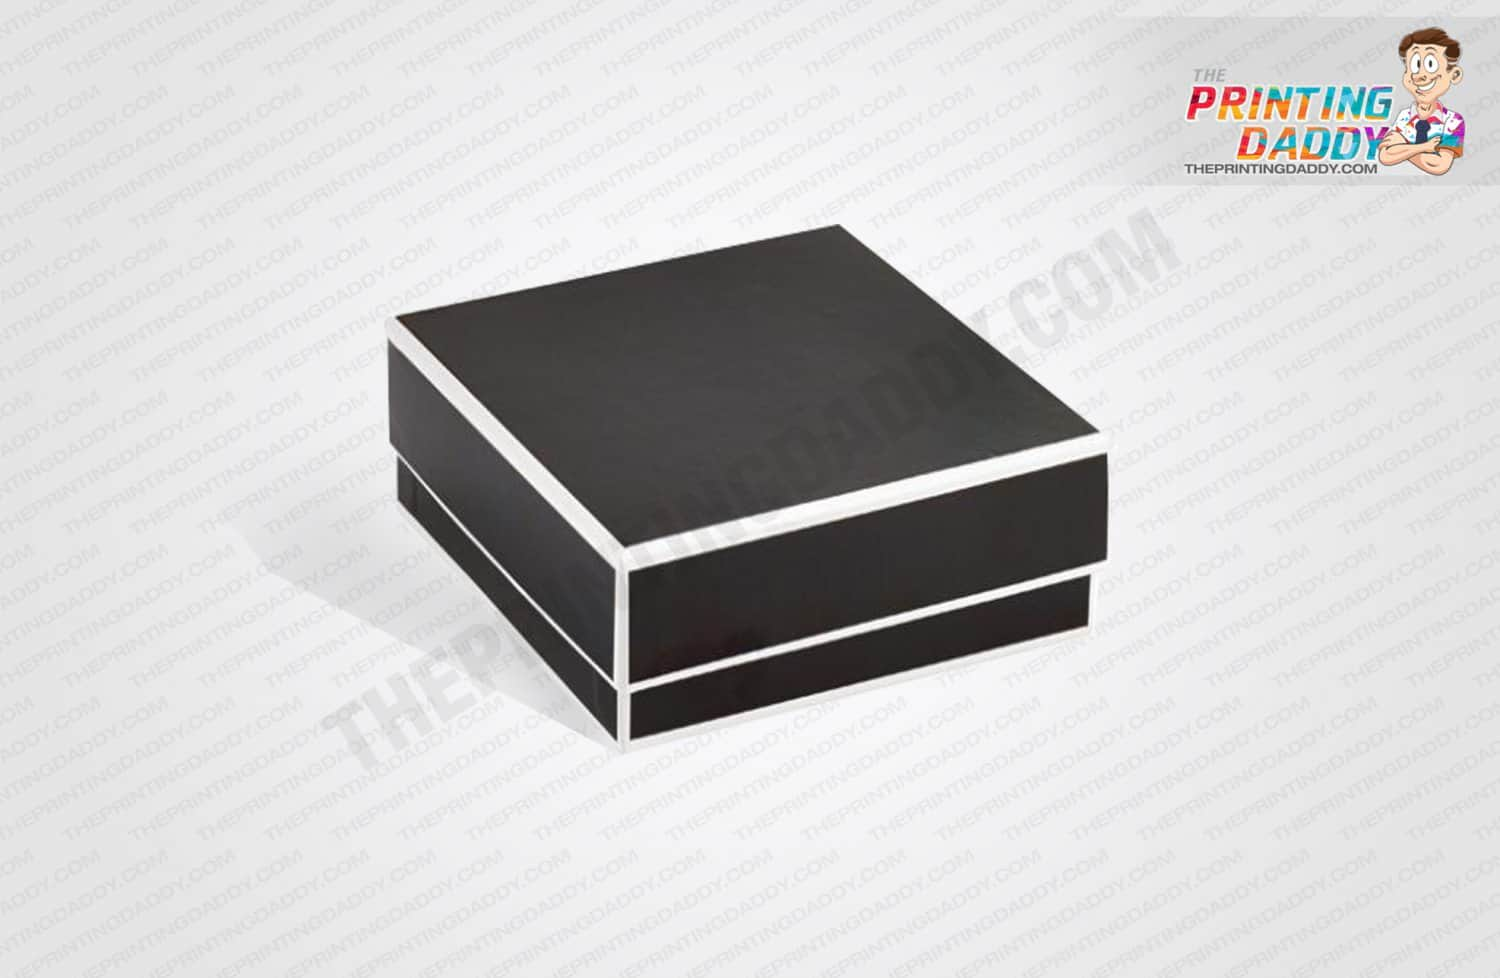 Black & White Product Set Boxes The Printing Daddy